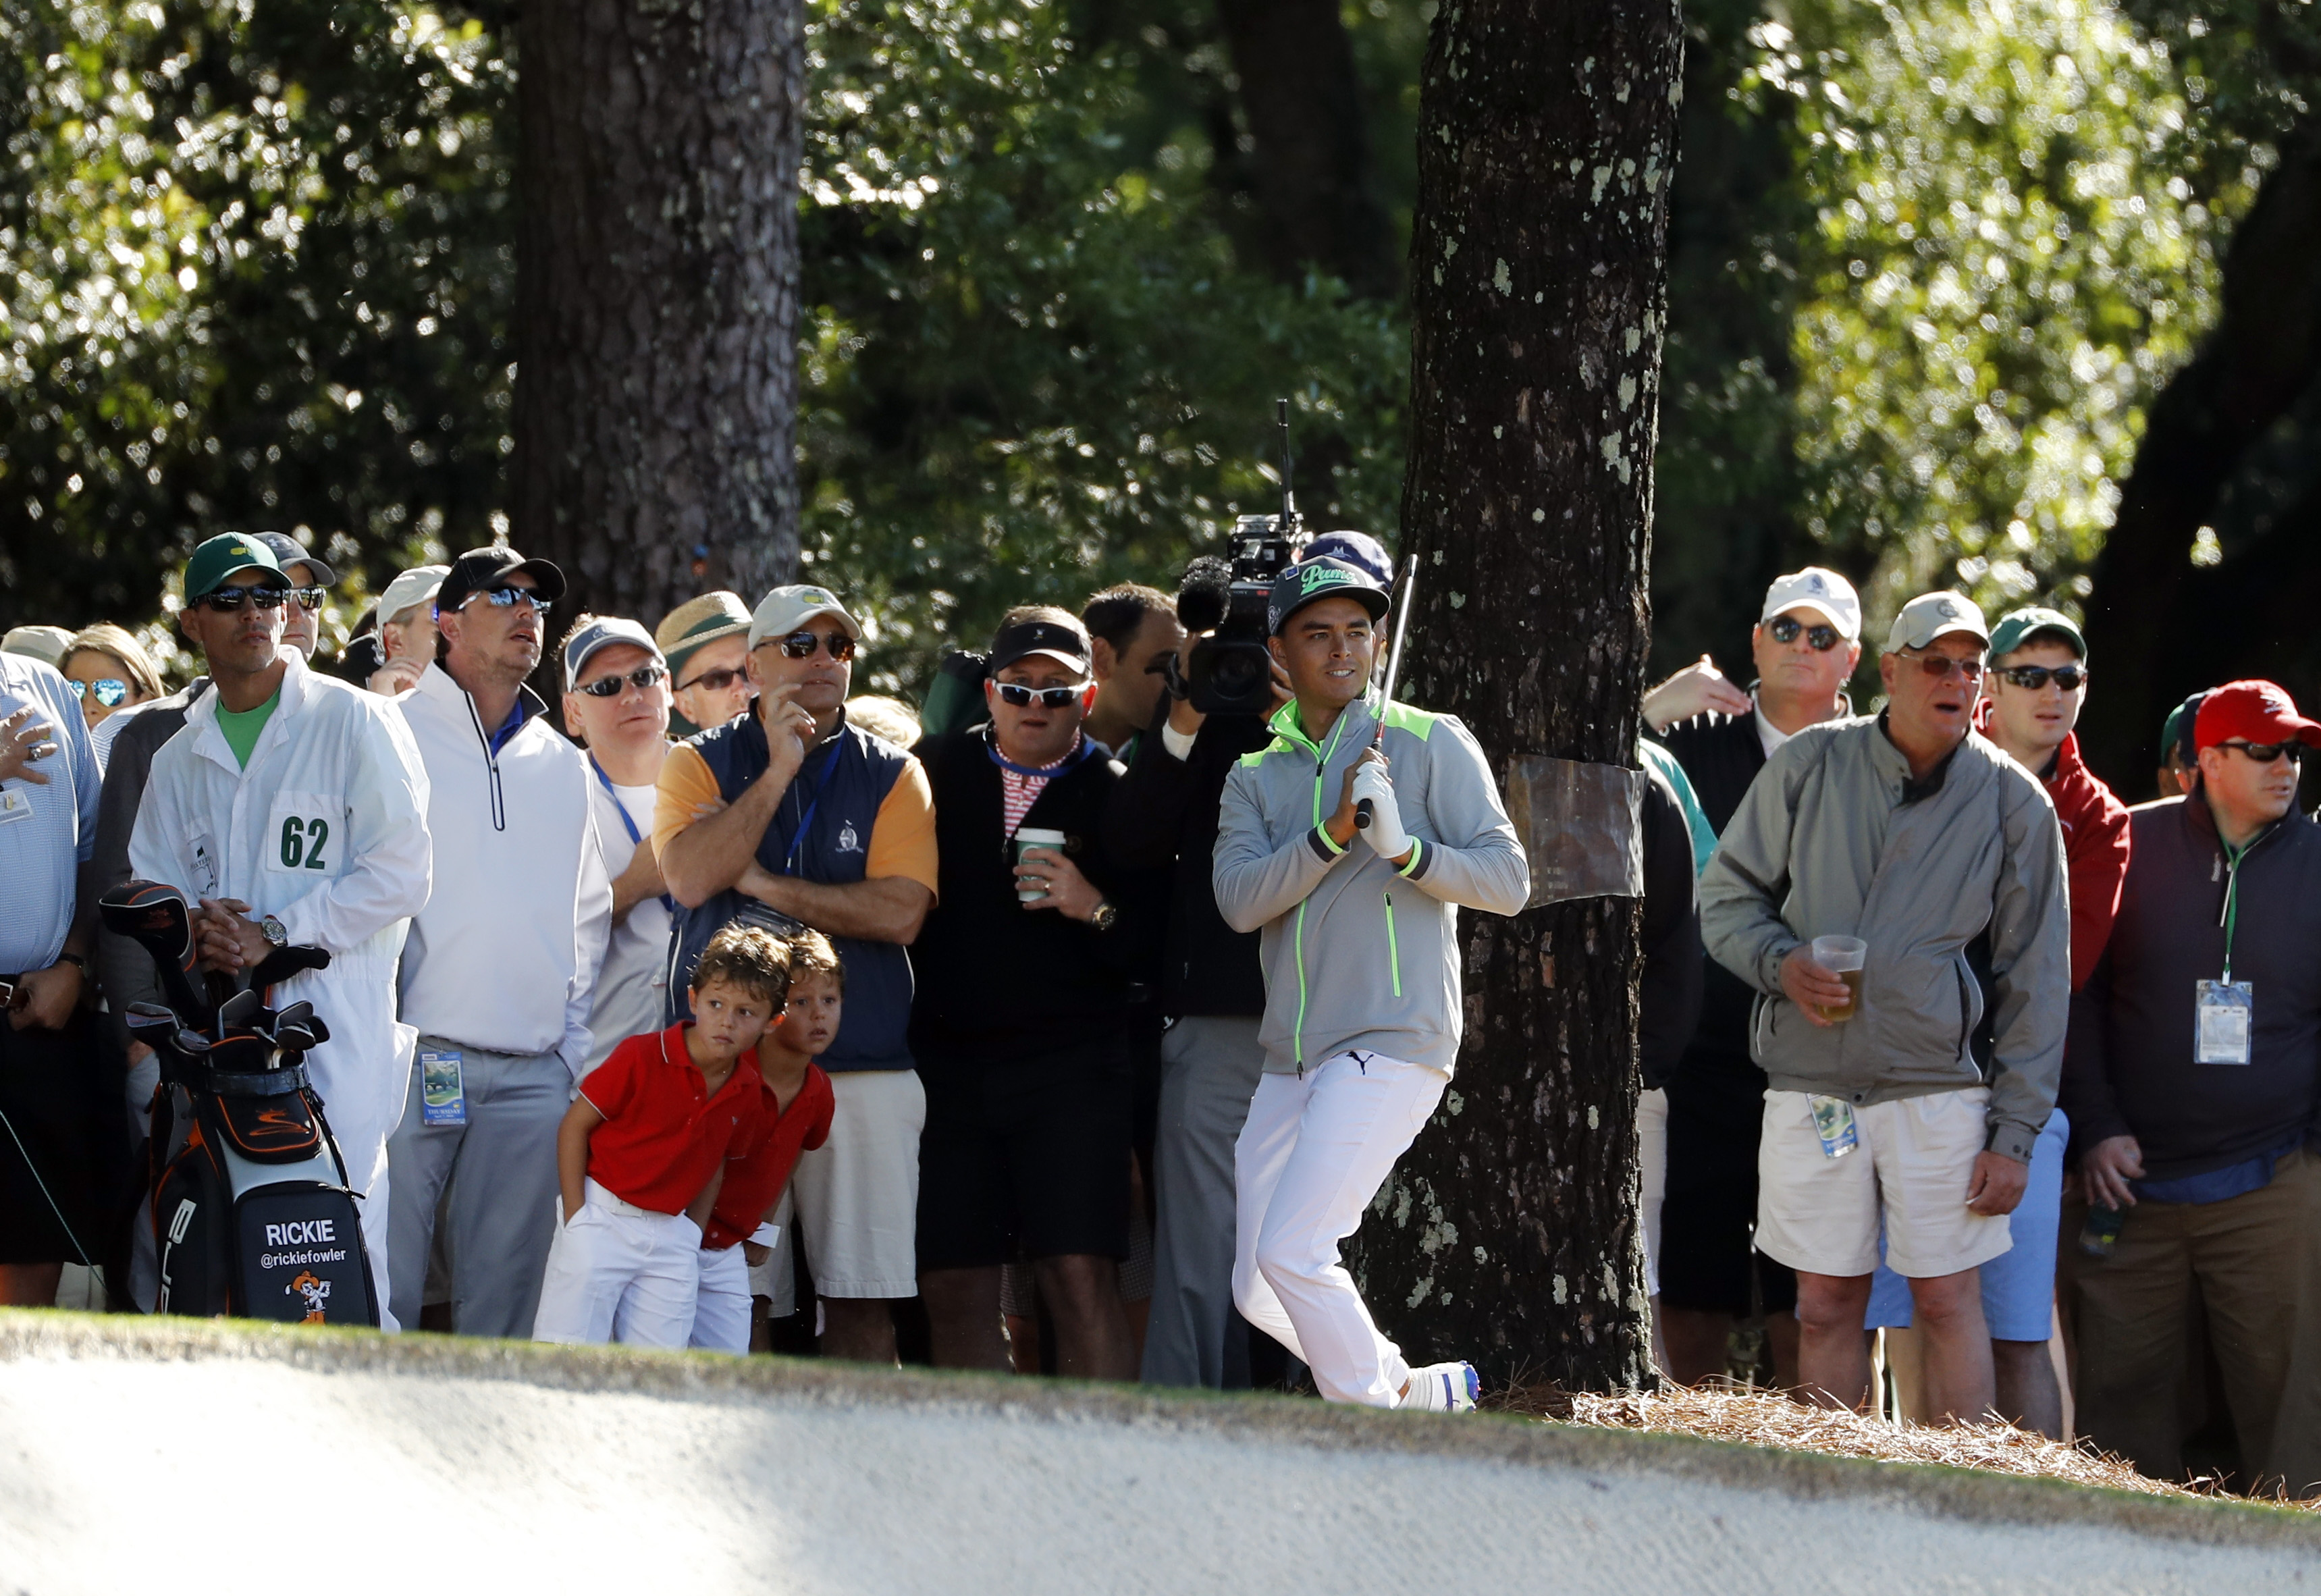 Rickie Fowler watches as he shot bounces off a tree on the first fairway during the first round of the Masters golf tournament Thursday, April 7, 2016, in Augusta, Ga. (AP Photo/Matt Slocum)